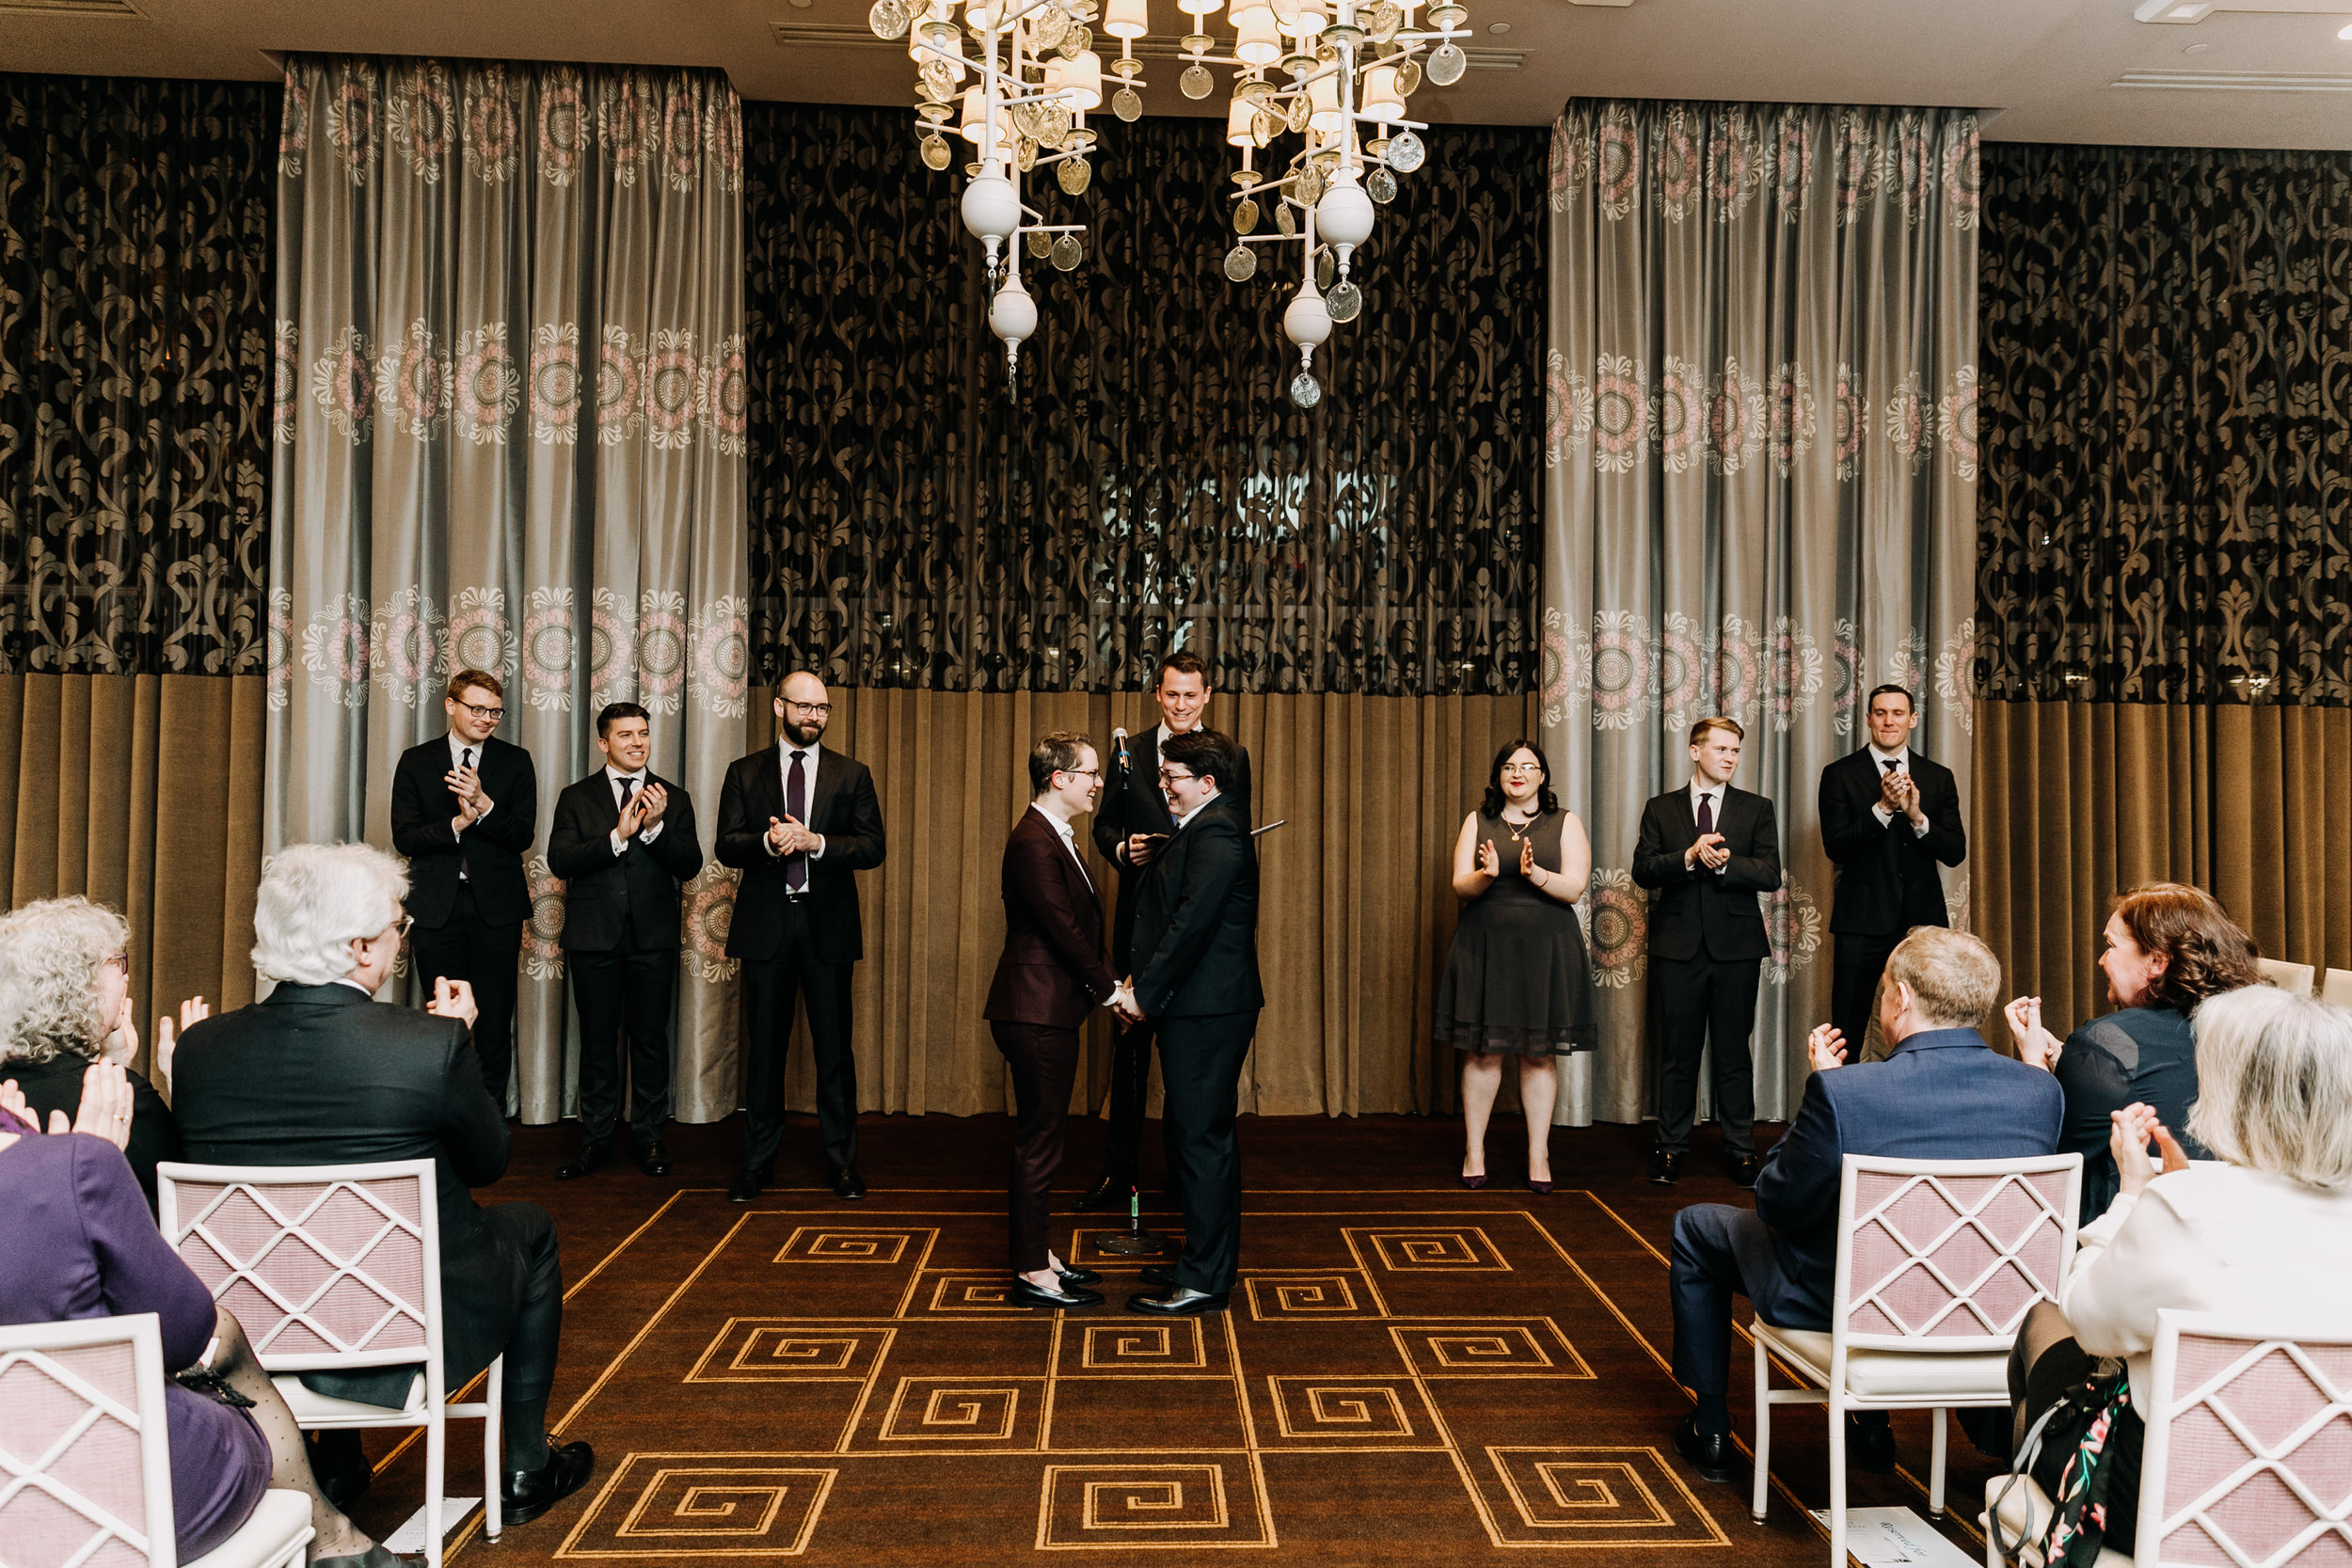 philadelphia-photography-wedding-hotel monaco-same sex-lgbtq-modern-fine-art-candid-52.jpg